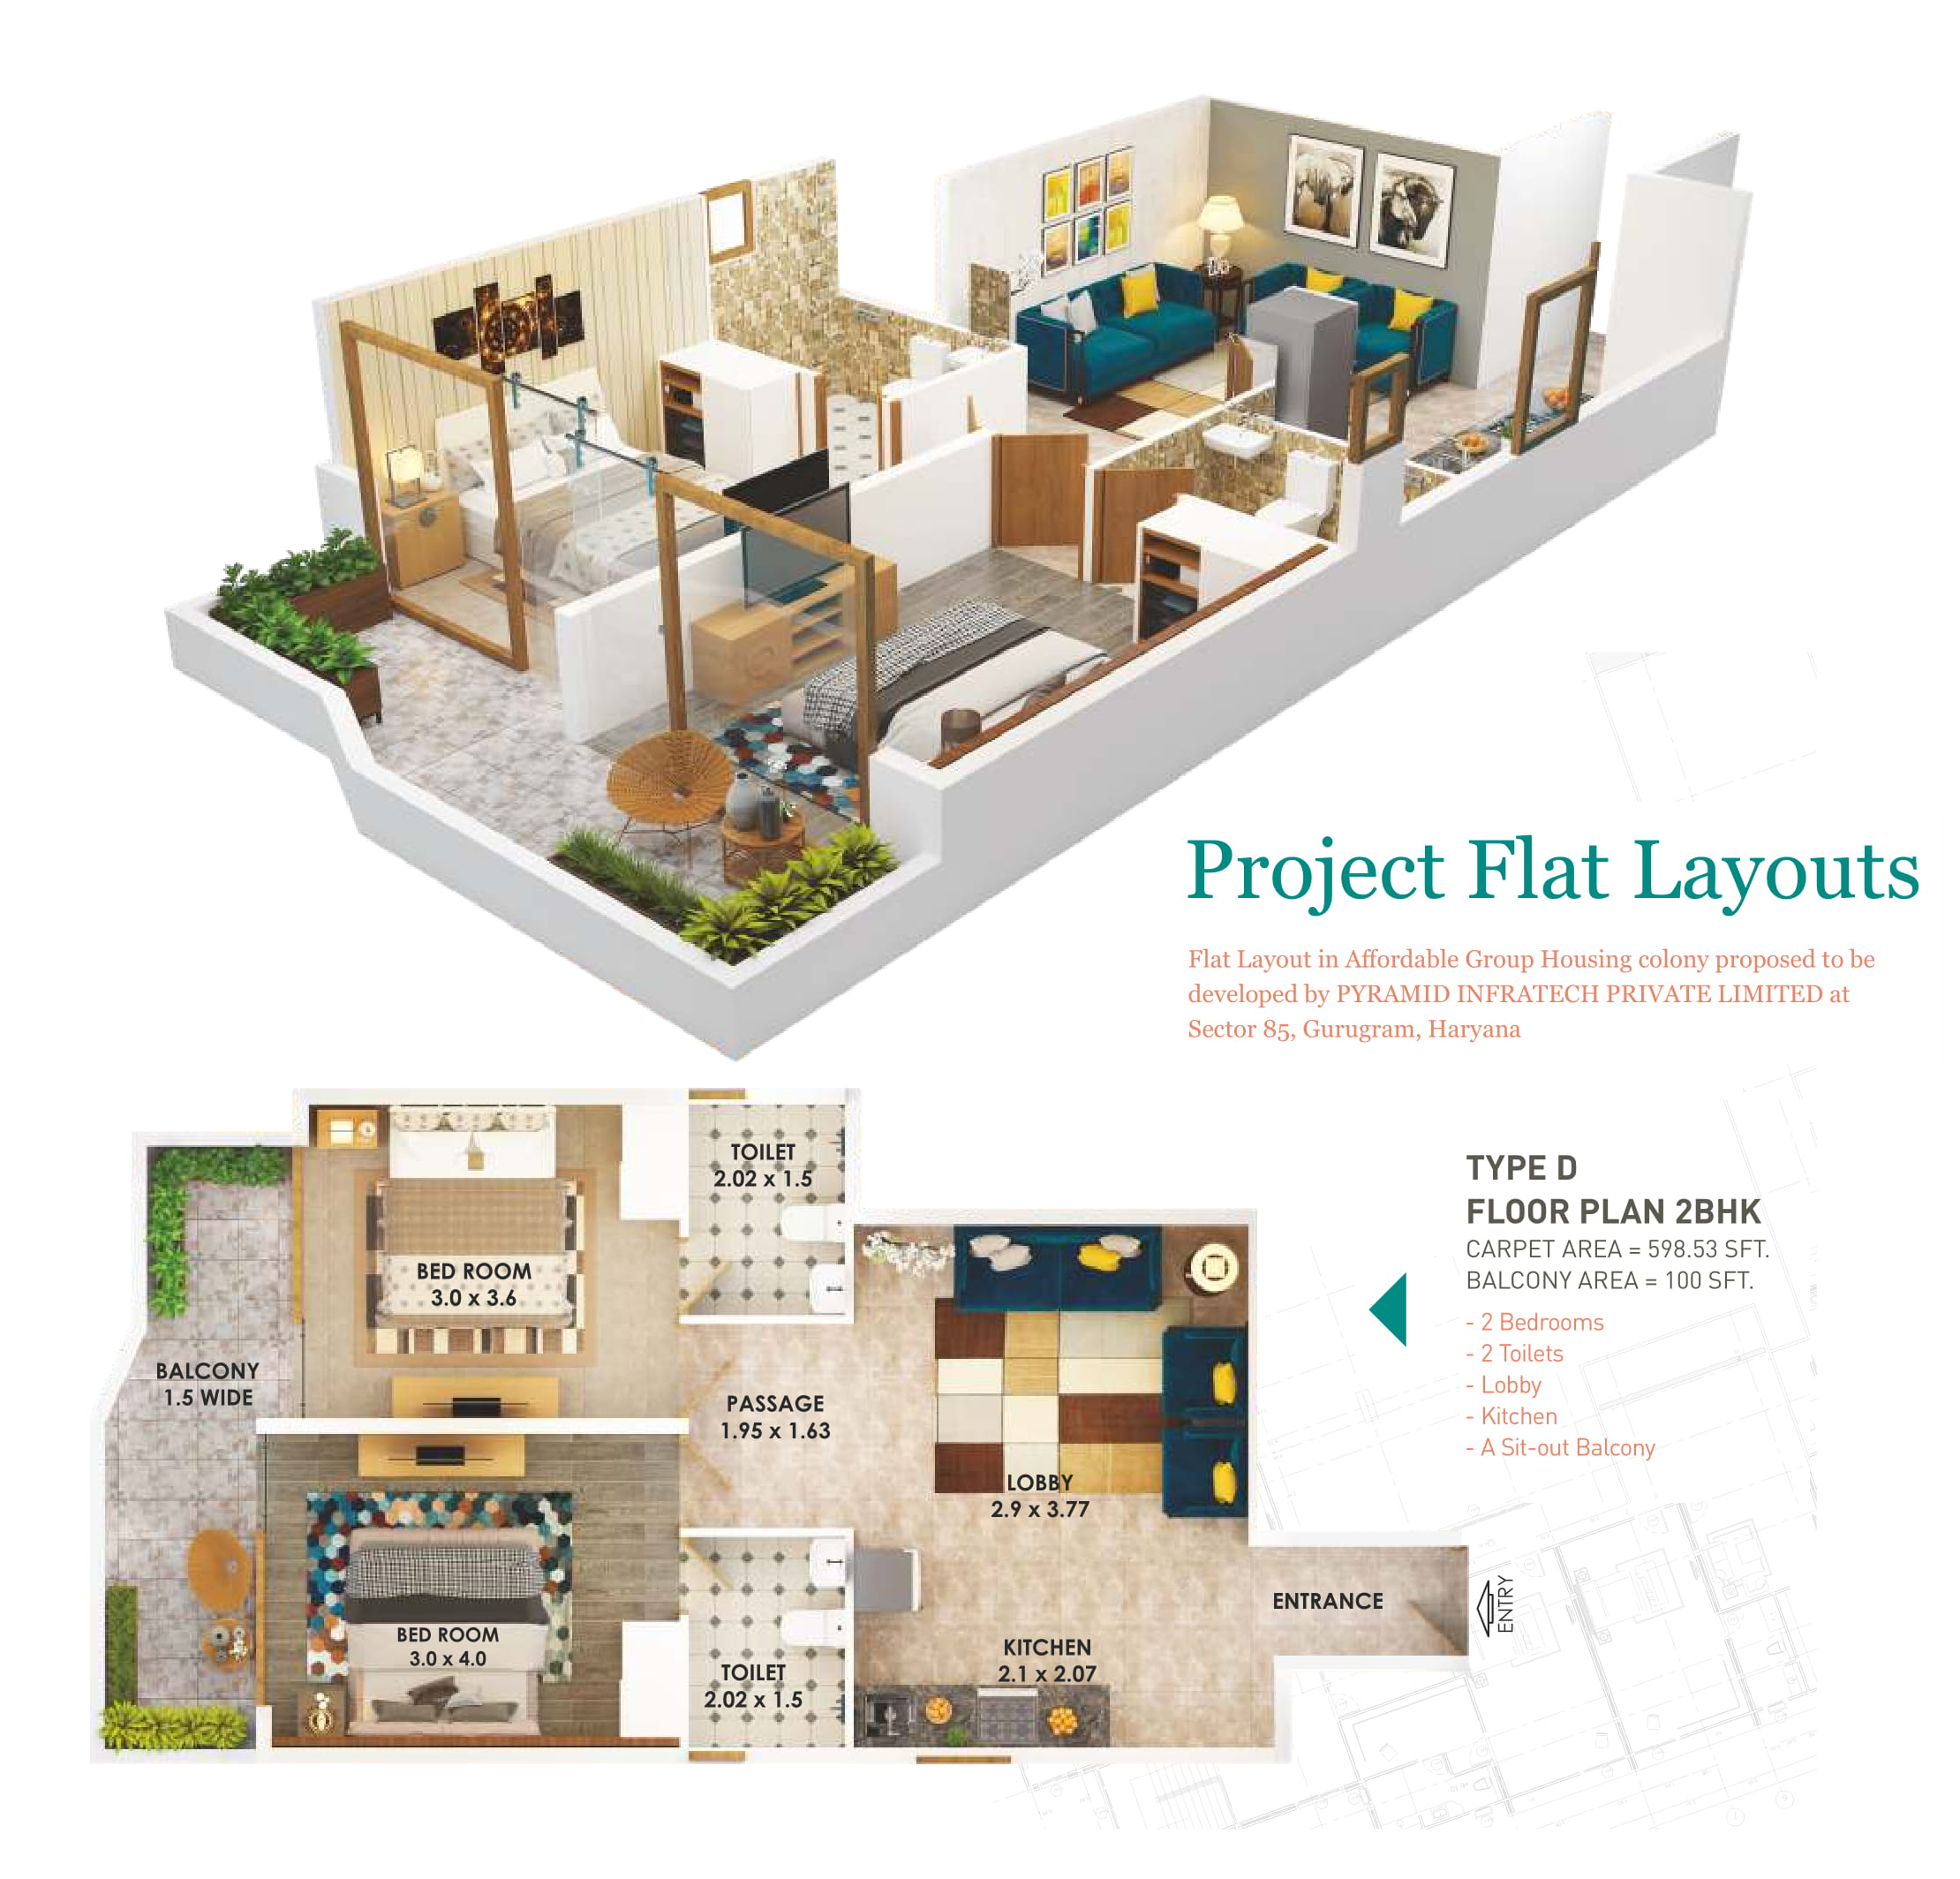 2D Layout Plan